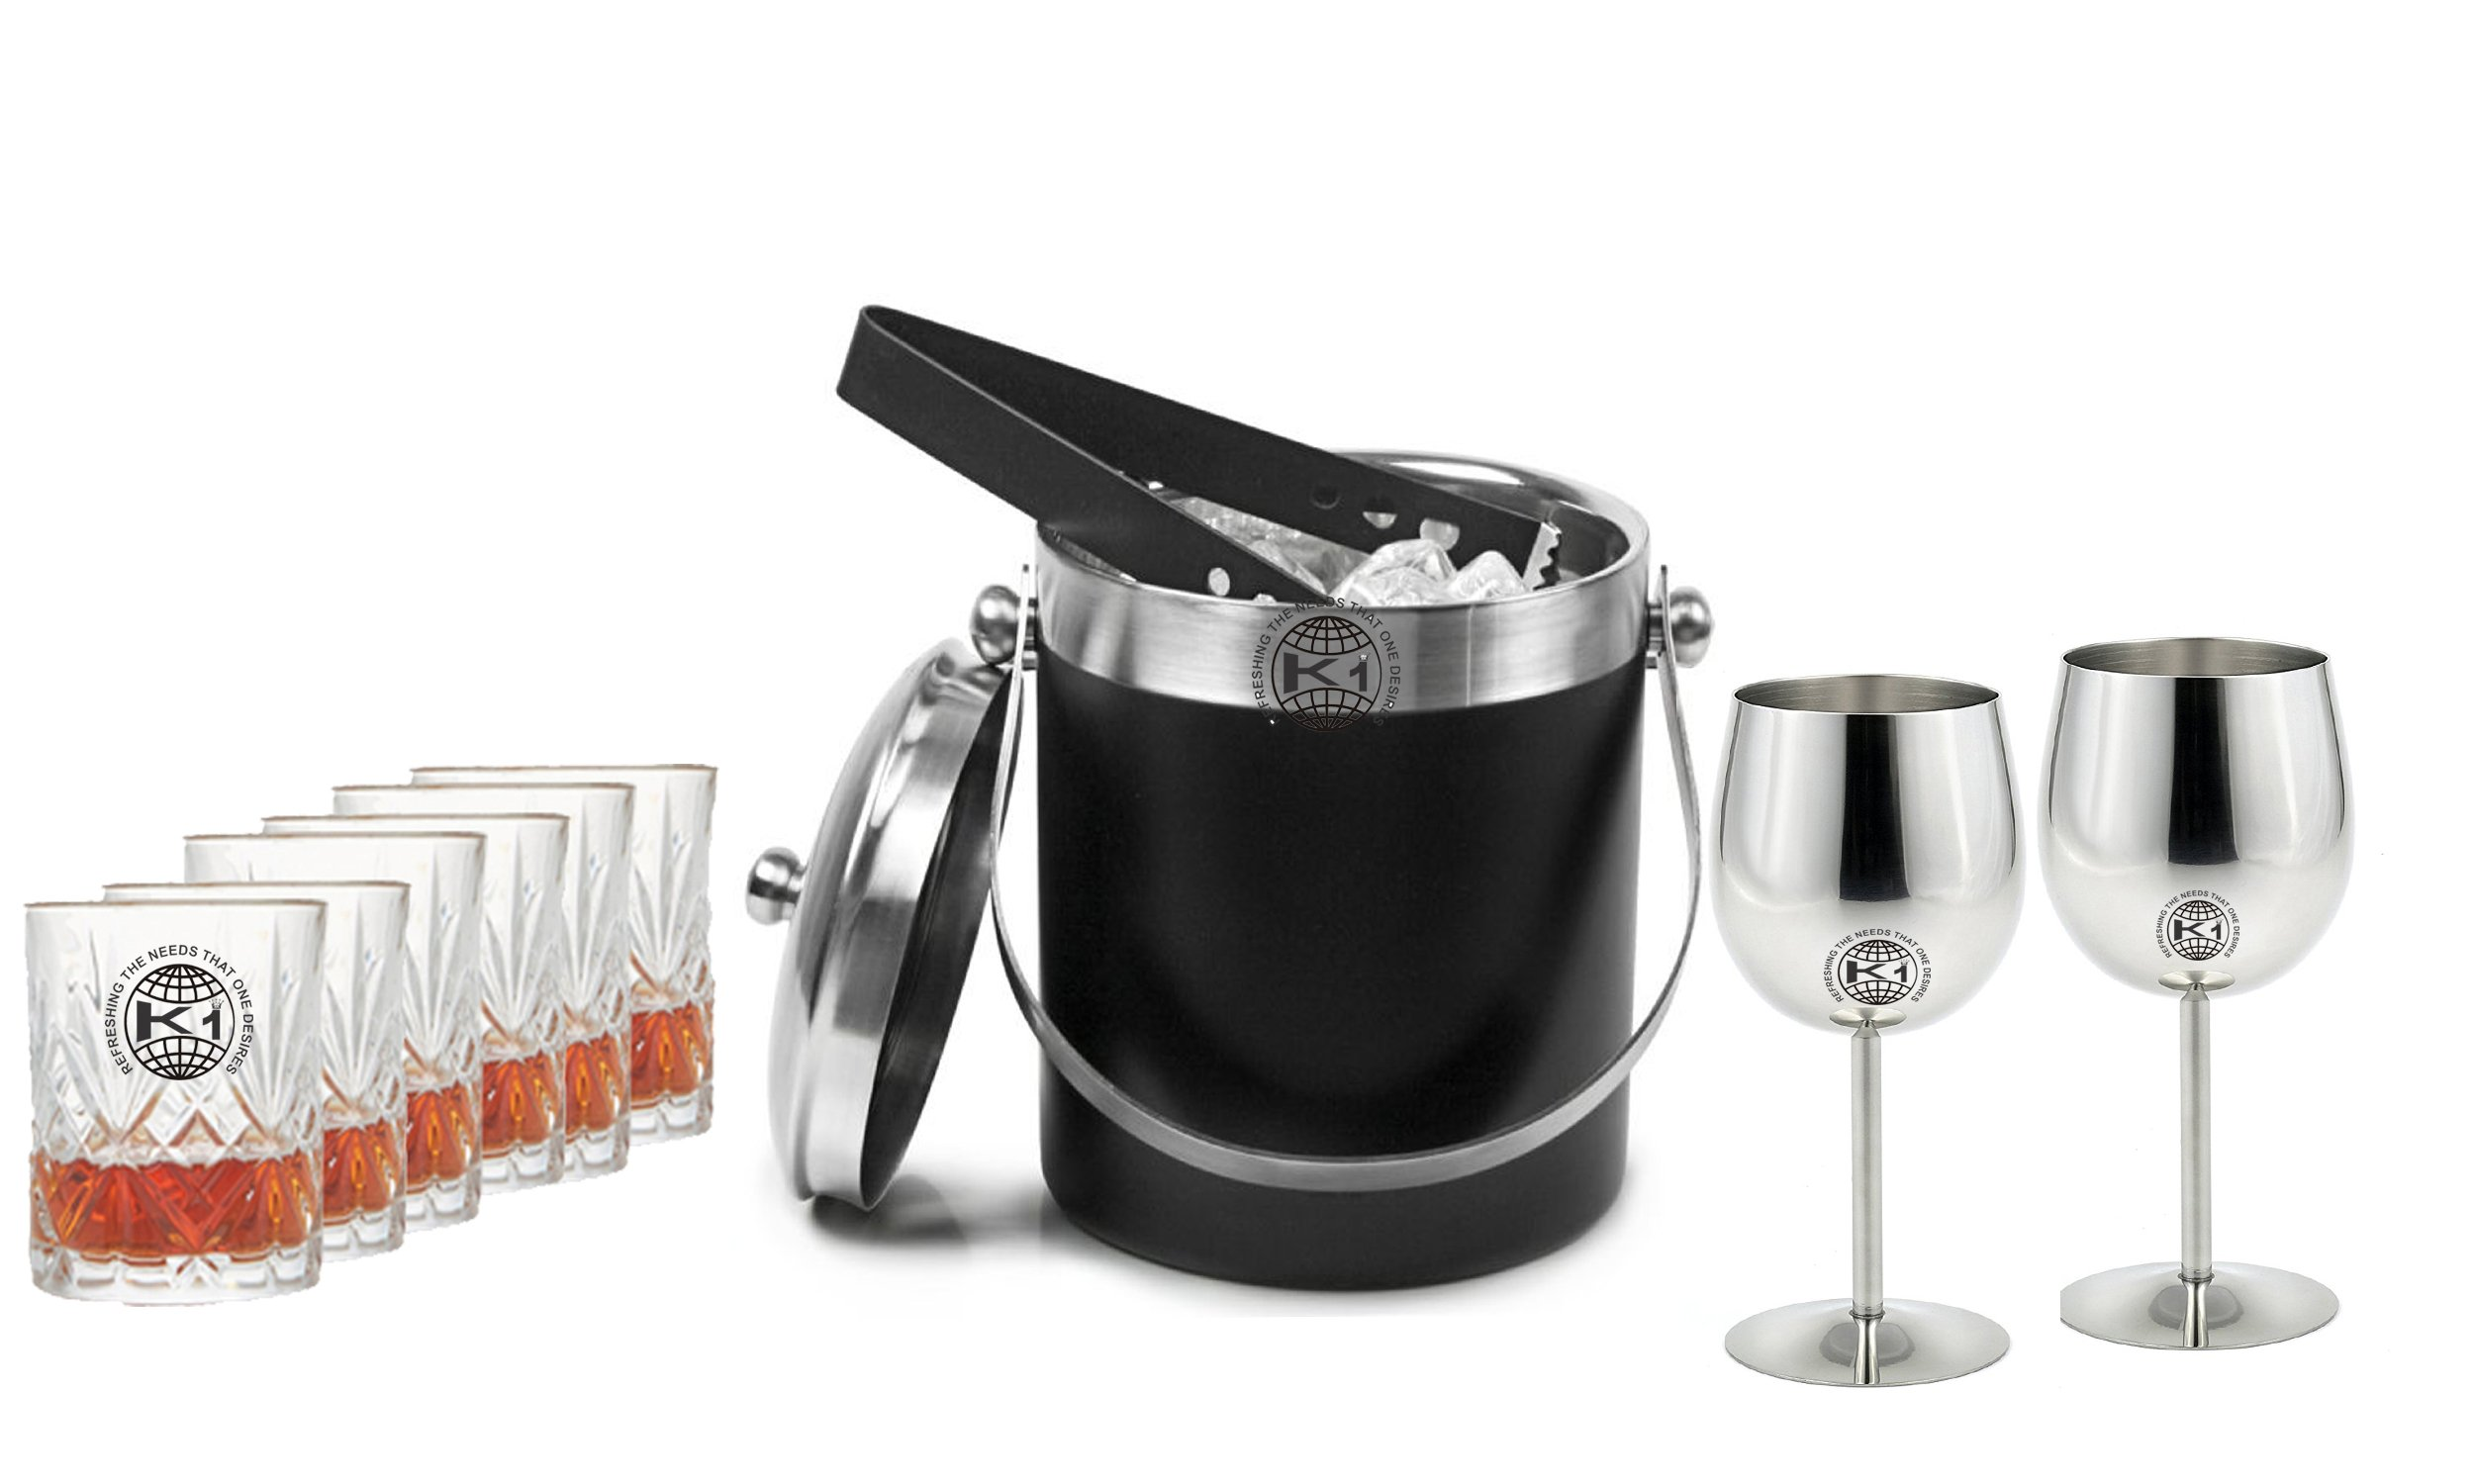 King International 100% Stainless Steel Black Bar Set | Bar Tools | Bar Accesories Of 10 Pieces Including 1 Ice Bucket | 1 Tong And 2 Goblet Glasses, 6 Whisky Glasses